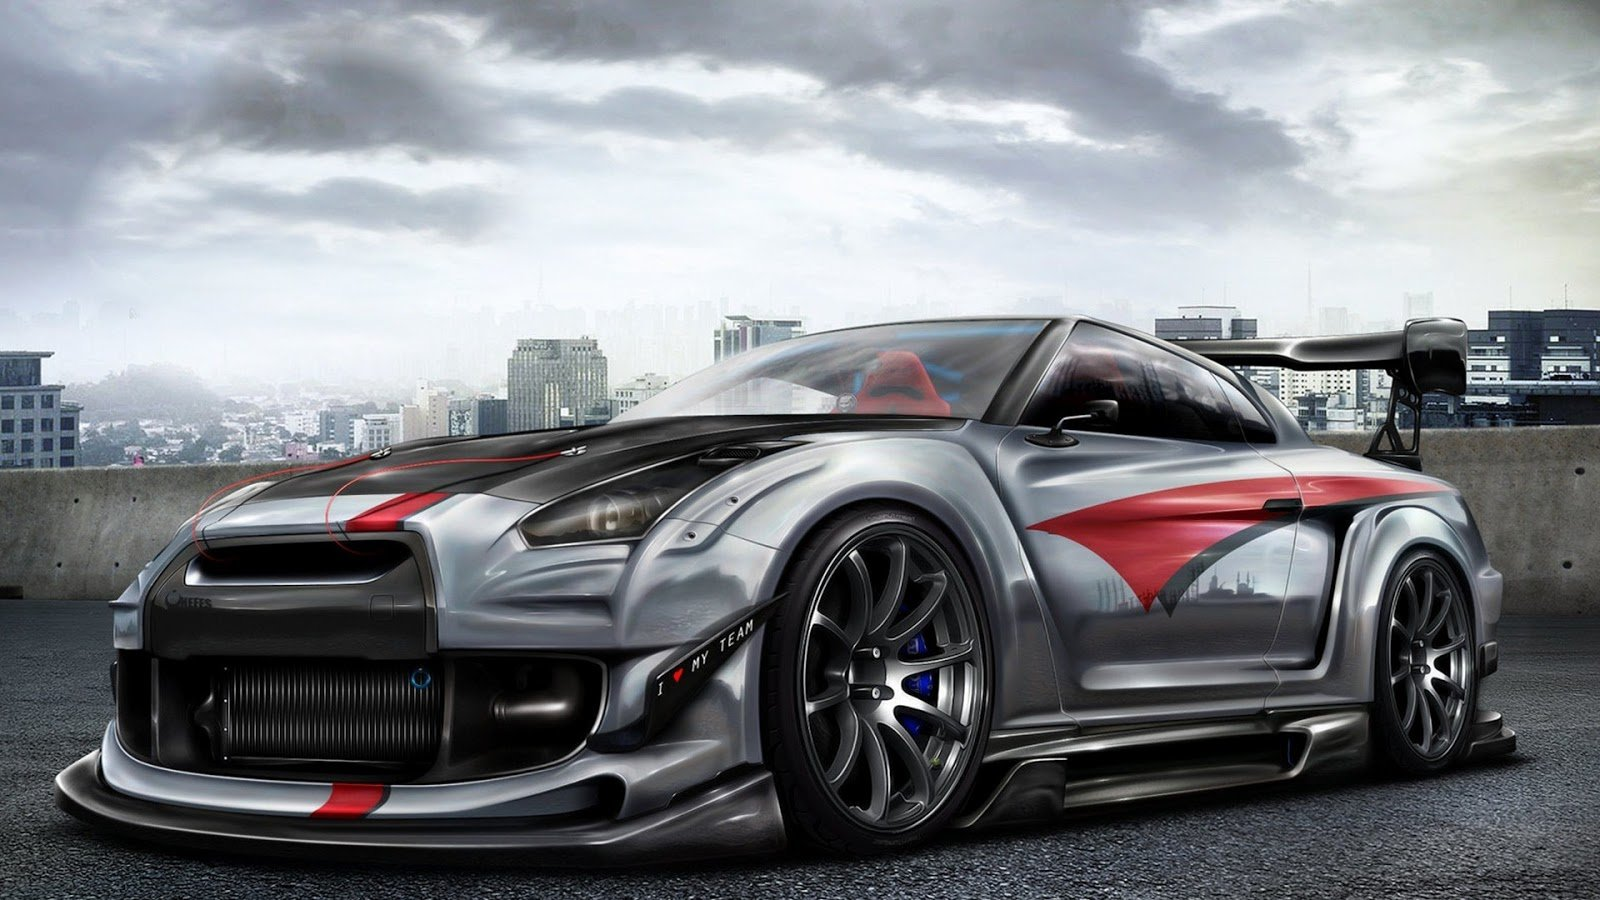 Download The Best 2014 Nissan Skyline Gtr Wallpapers Car 1600x900